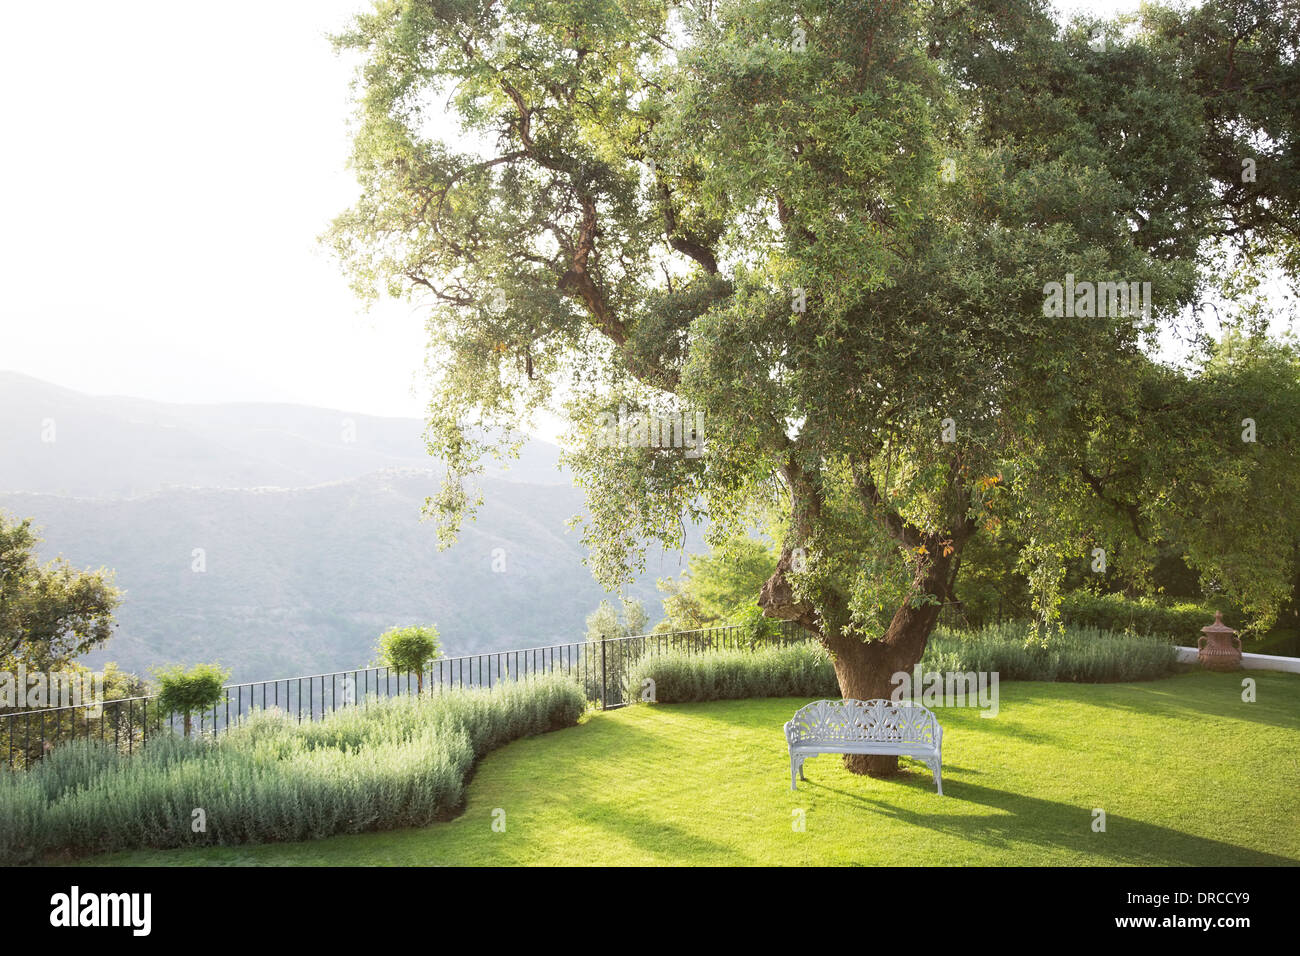 Bench under tree in calm park Stock Photo